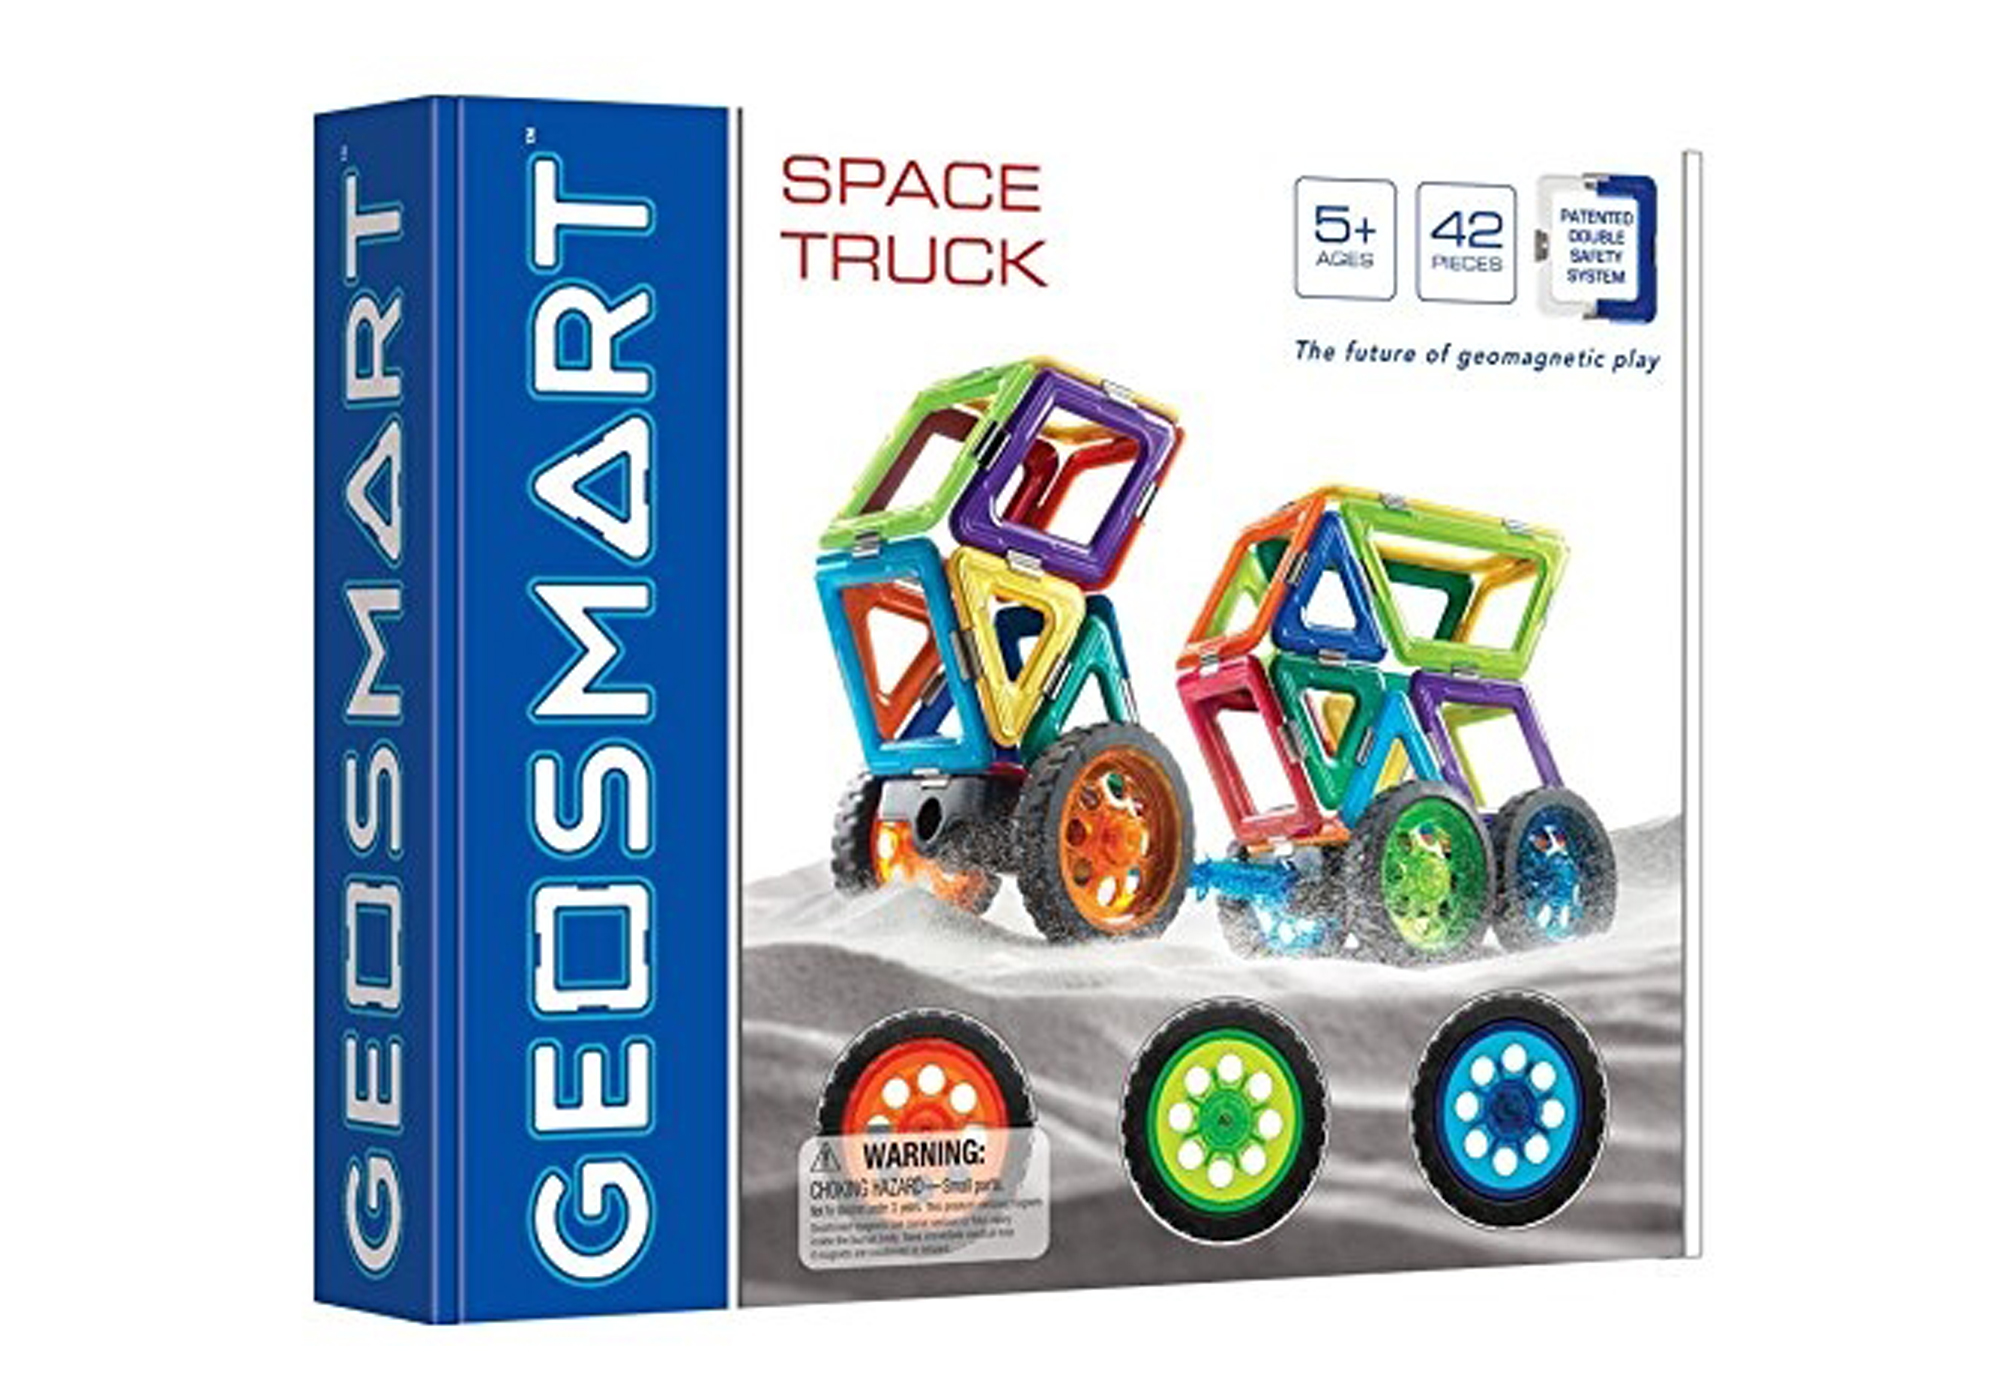 Space Truck Construction set